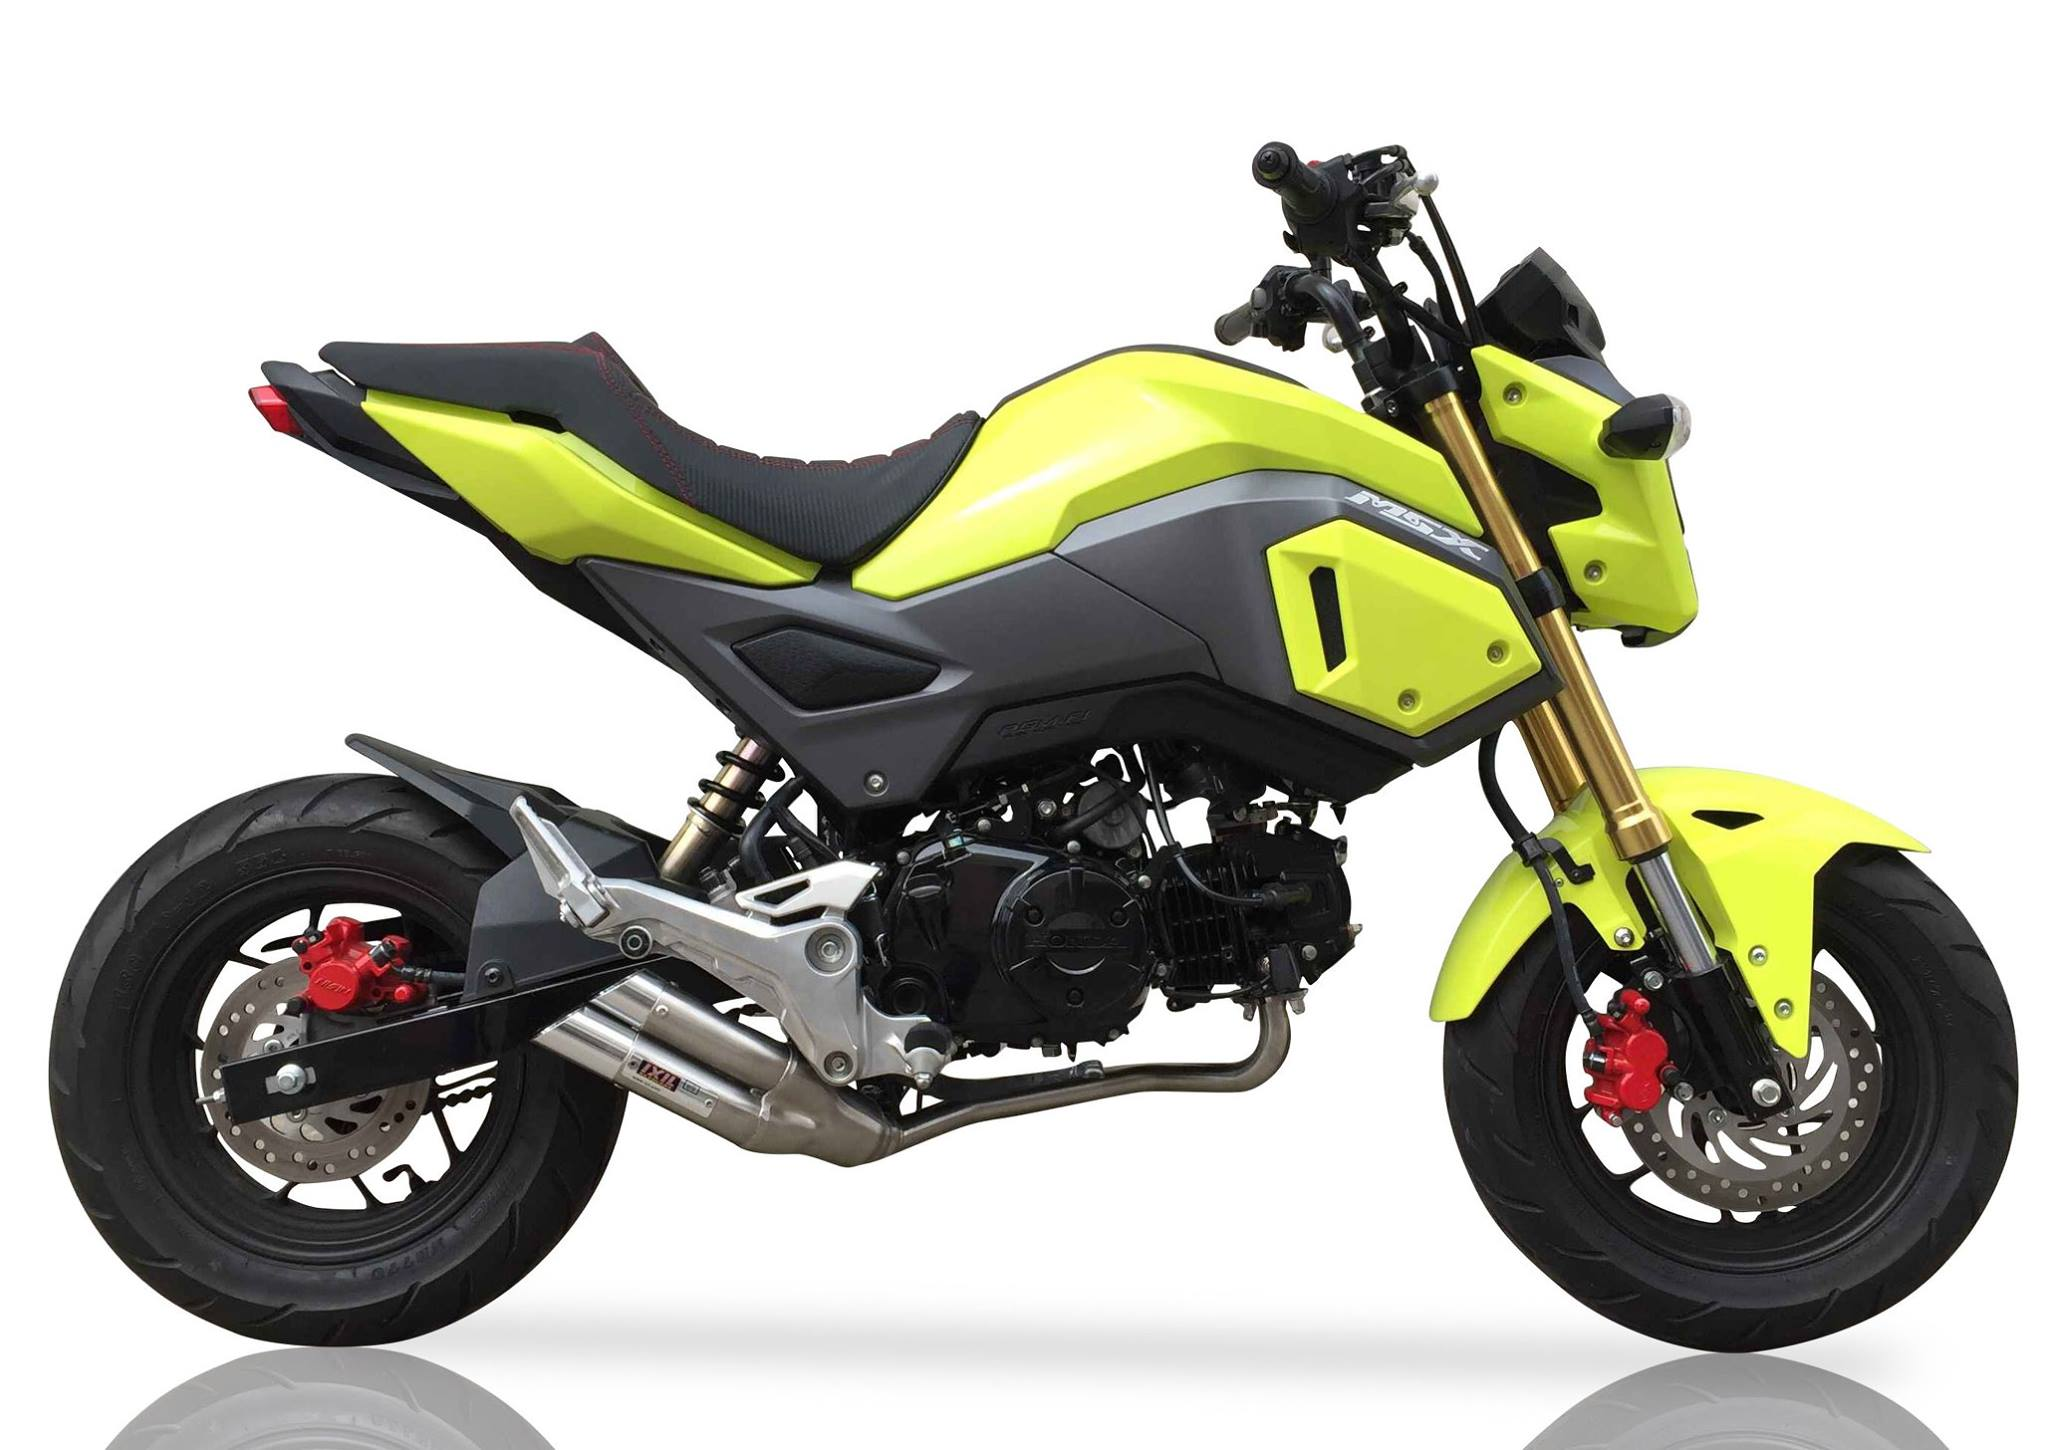 ixil hyperlow full system honda msx125 grom 2013 2017. Black Bedroom Furniture Sets. Home Design Ideas